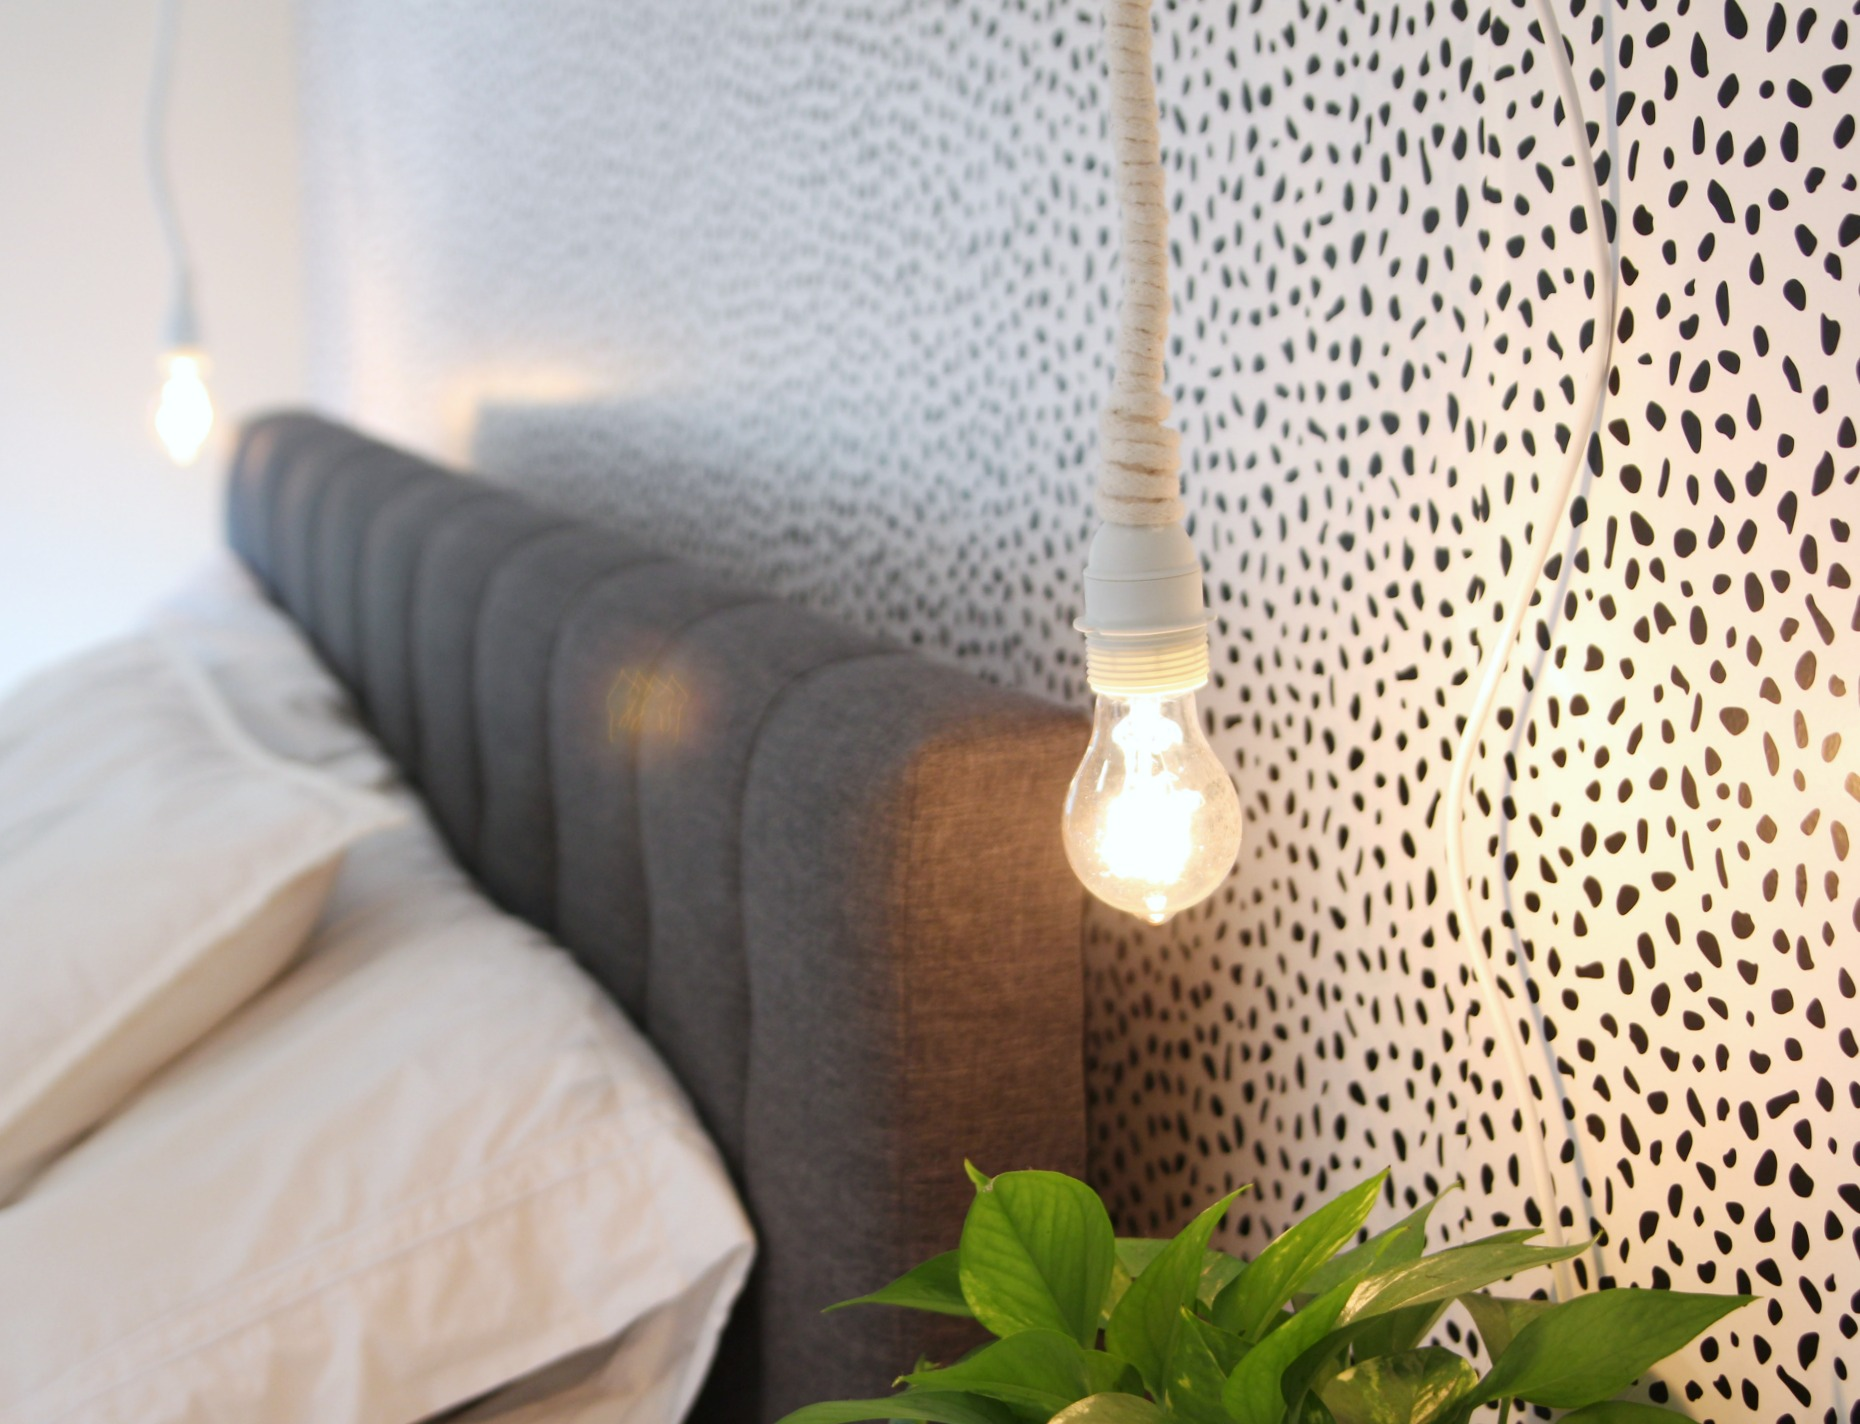 How to Make the DIY Hanging Rope Lights/ Loop Line Lamps